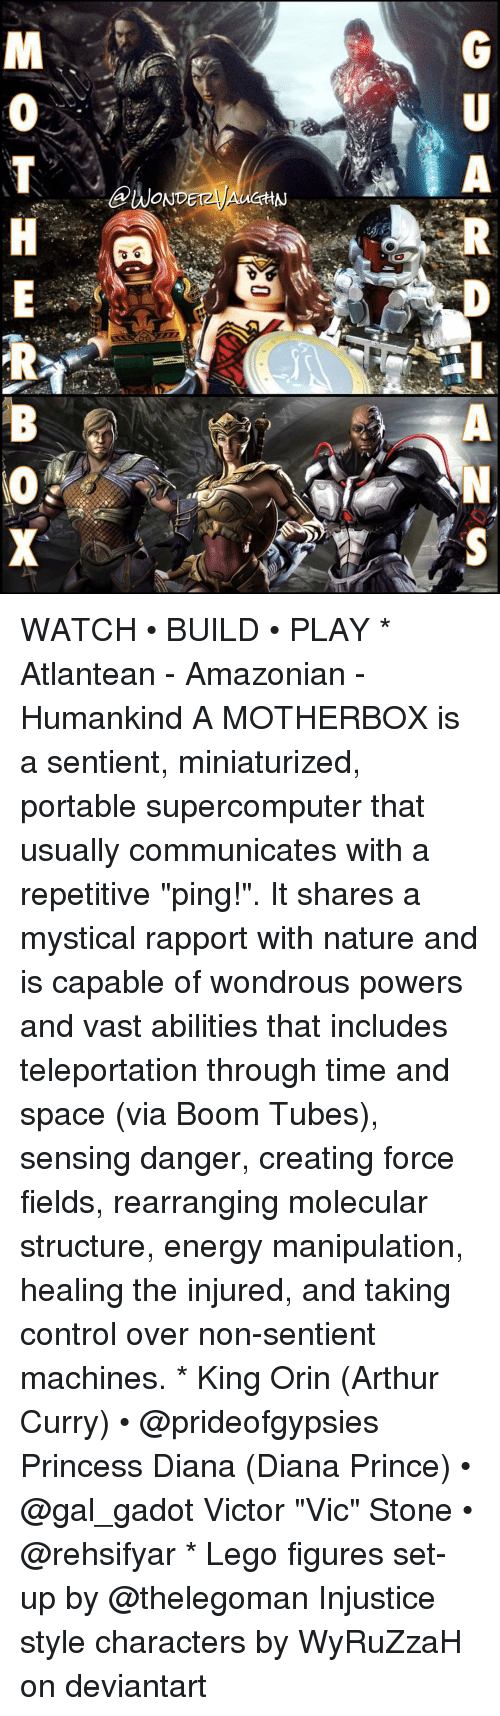 """forceful: A  @WONDETzyAUCHN  GU  RP-ANS  MOTH E  RB (O X WATCH • BUILD • PLAY * Atlantean - Amazonian - Humankind A MOTHERBOX is a sentient, miniaturized, portable supercomputer that usually communicates with a repetitive """"ping!"""". It shares a mystical rapport with nature and is capable of wondrous powers and vast abilities that includes teleportation through time and space (via Boom Tubes), sensing danger, creating force fields, rearranging molecular structure, energy manipulation, healing the injured, and taking control over non-sentient machines. * King Orin (Arthur Curry) • @prideofgypsies Princess Diana (Diana Prince) • @gal_gadot Victor """"Vic"""" Stone • @rehsifyar * Lego figures set-up by @thelegoman Injustice style characters by WyRuZzaH on deviantart"""